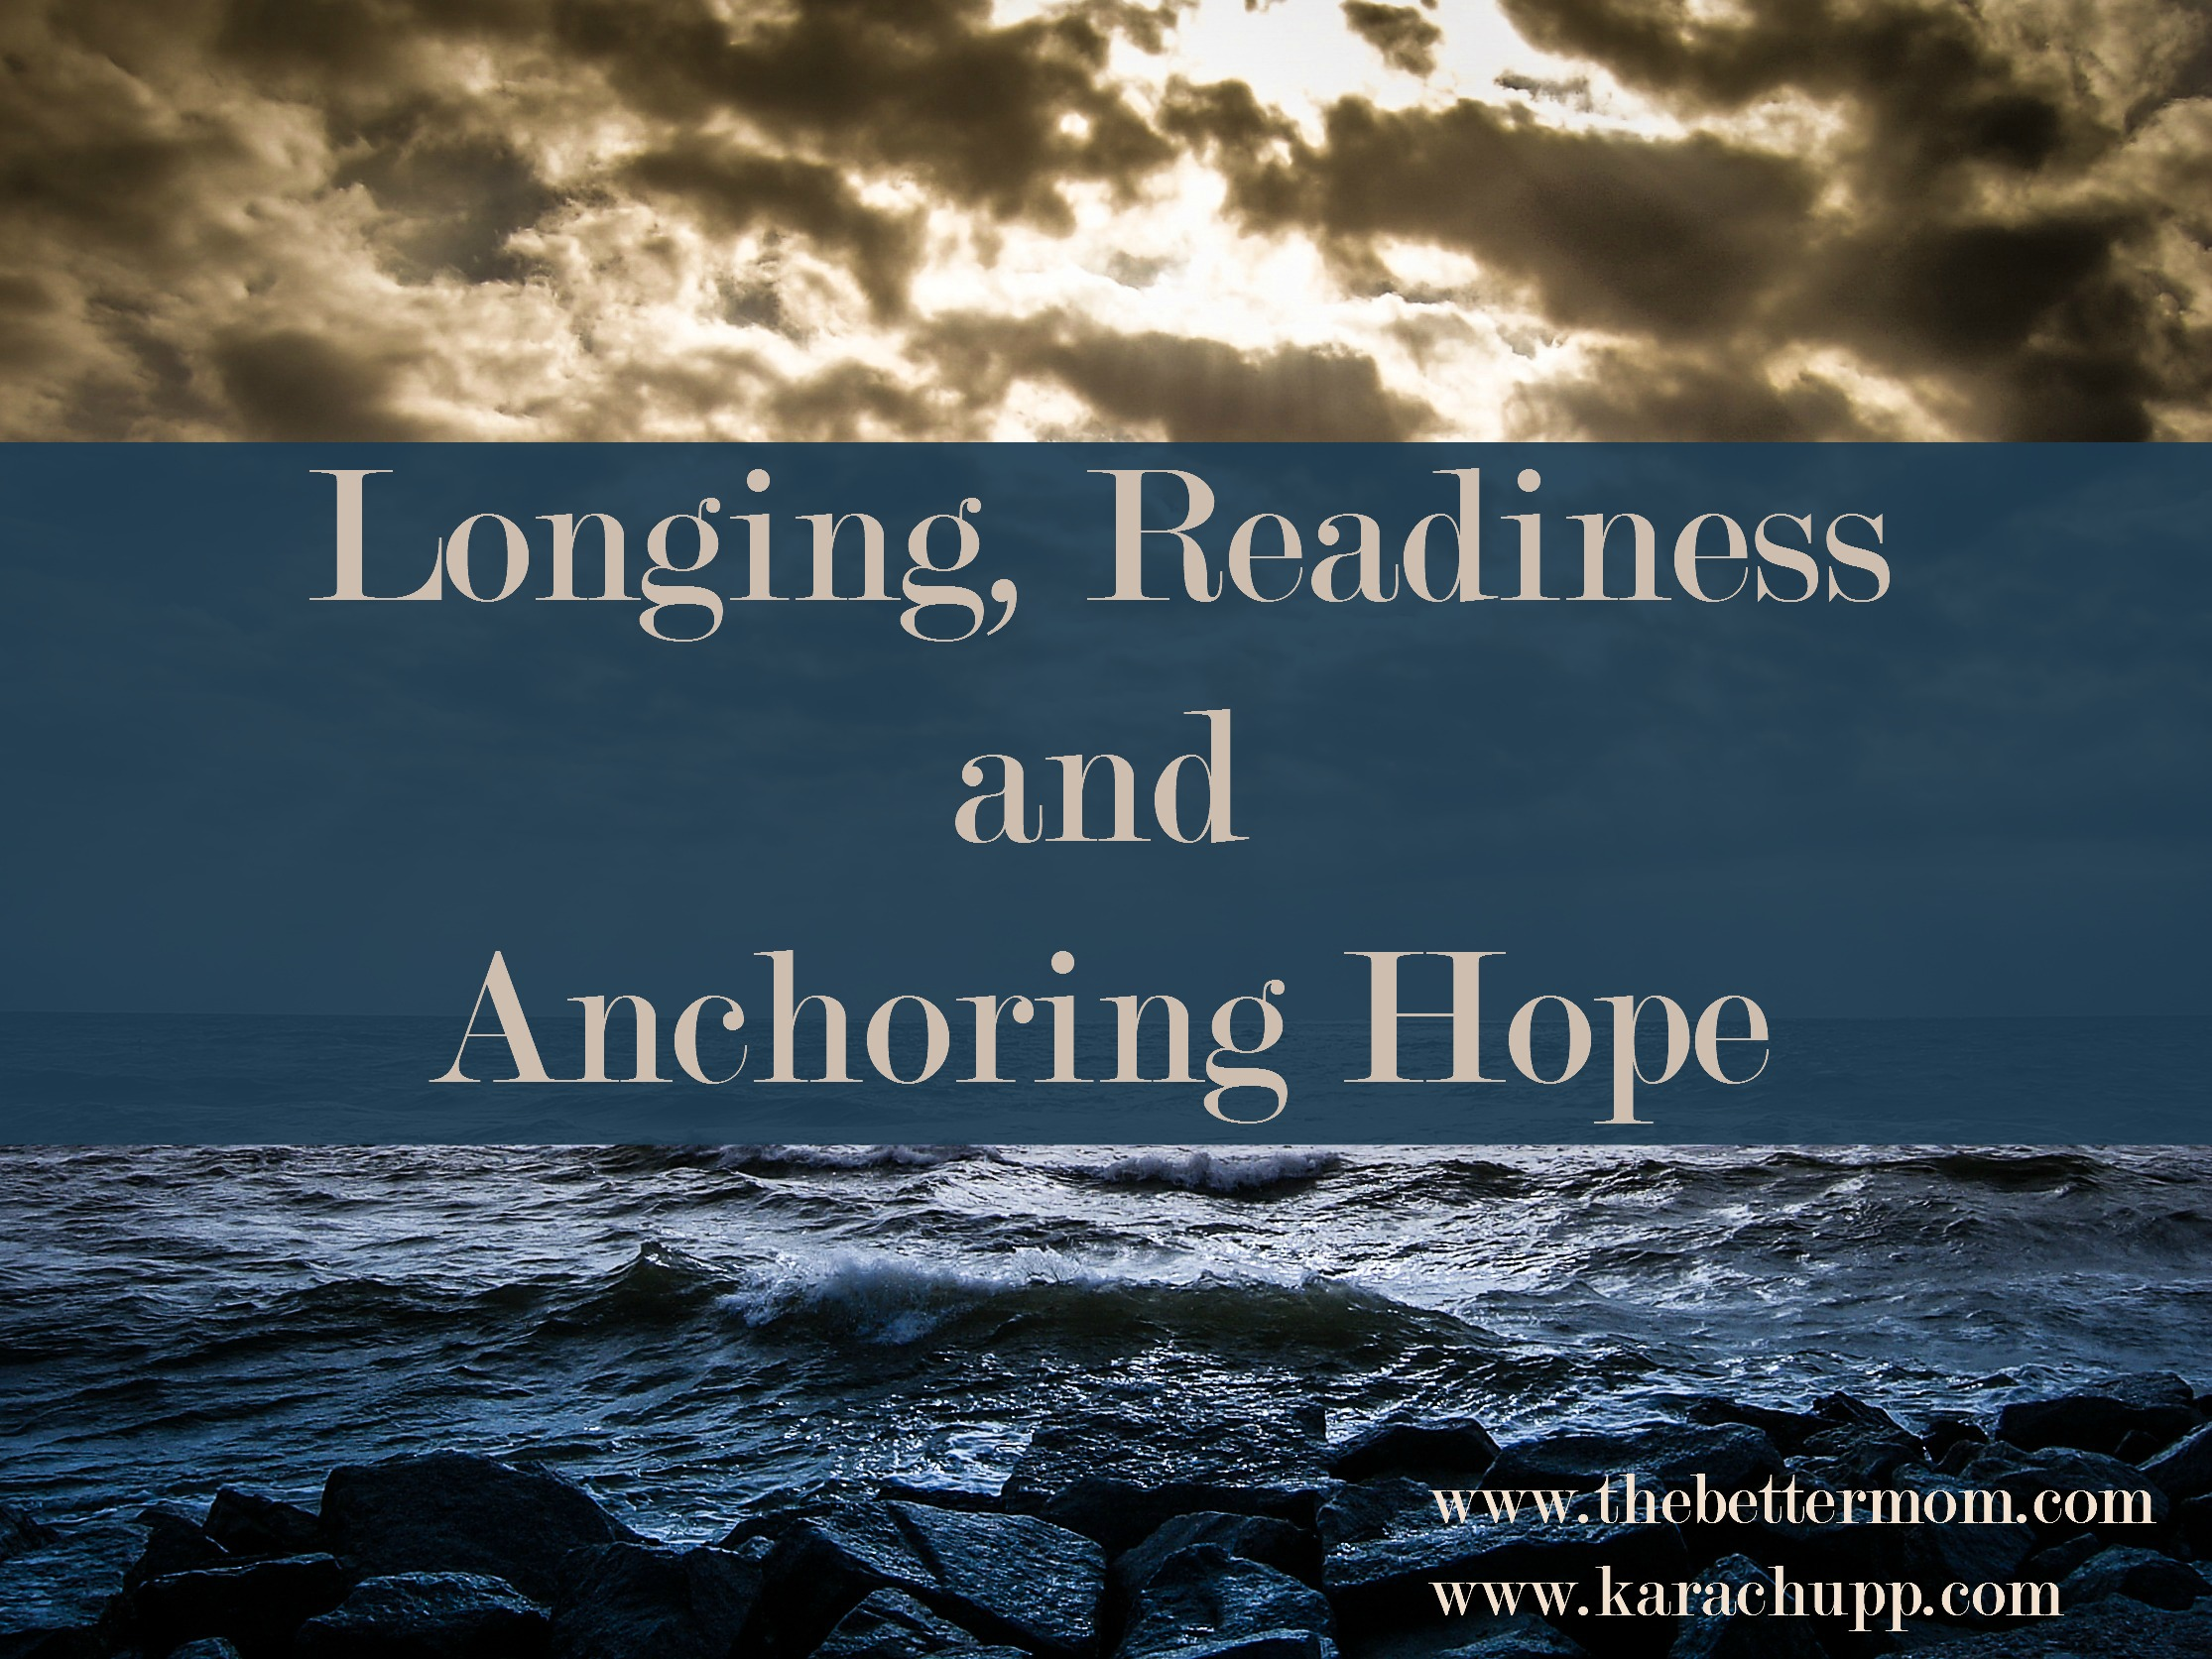 When we are worn thin and weary, where is our hope? Our day to day circumstances may change by the application of good advice, but our anchor as moms, in all things, is not on this earth at all. Do you know where your hope comes from?